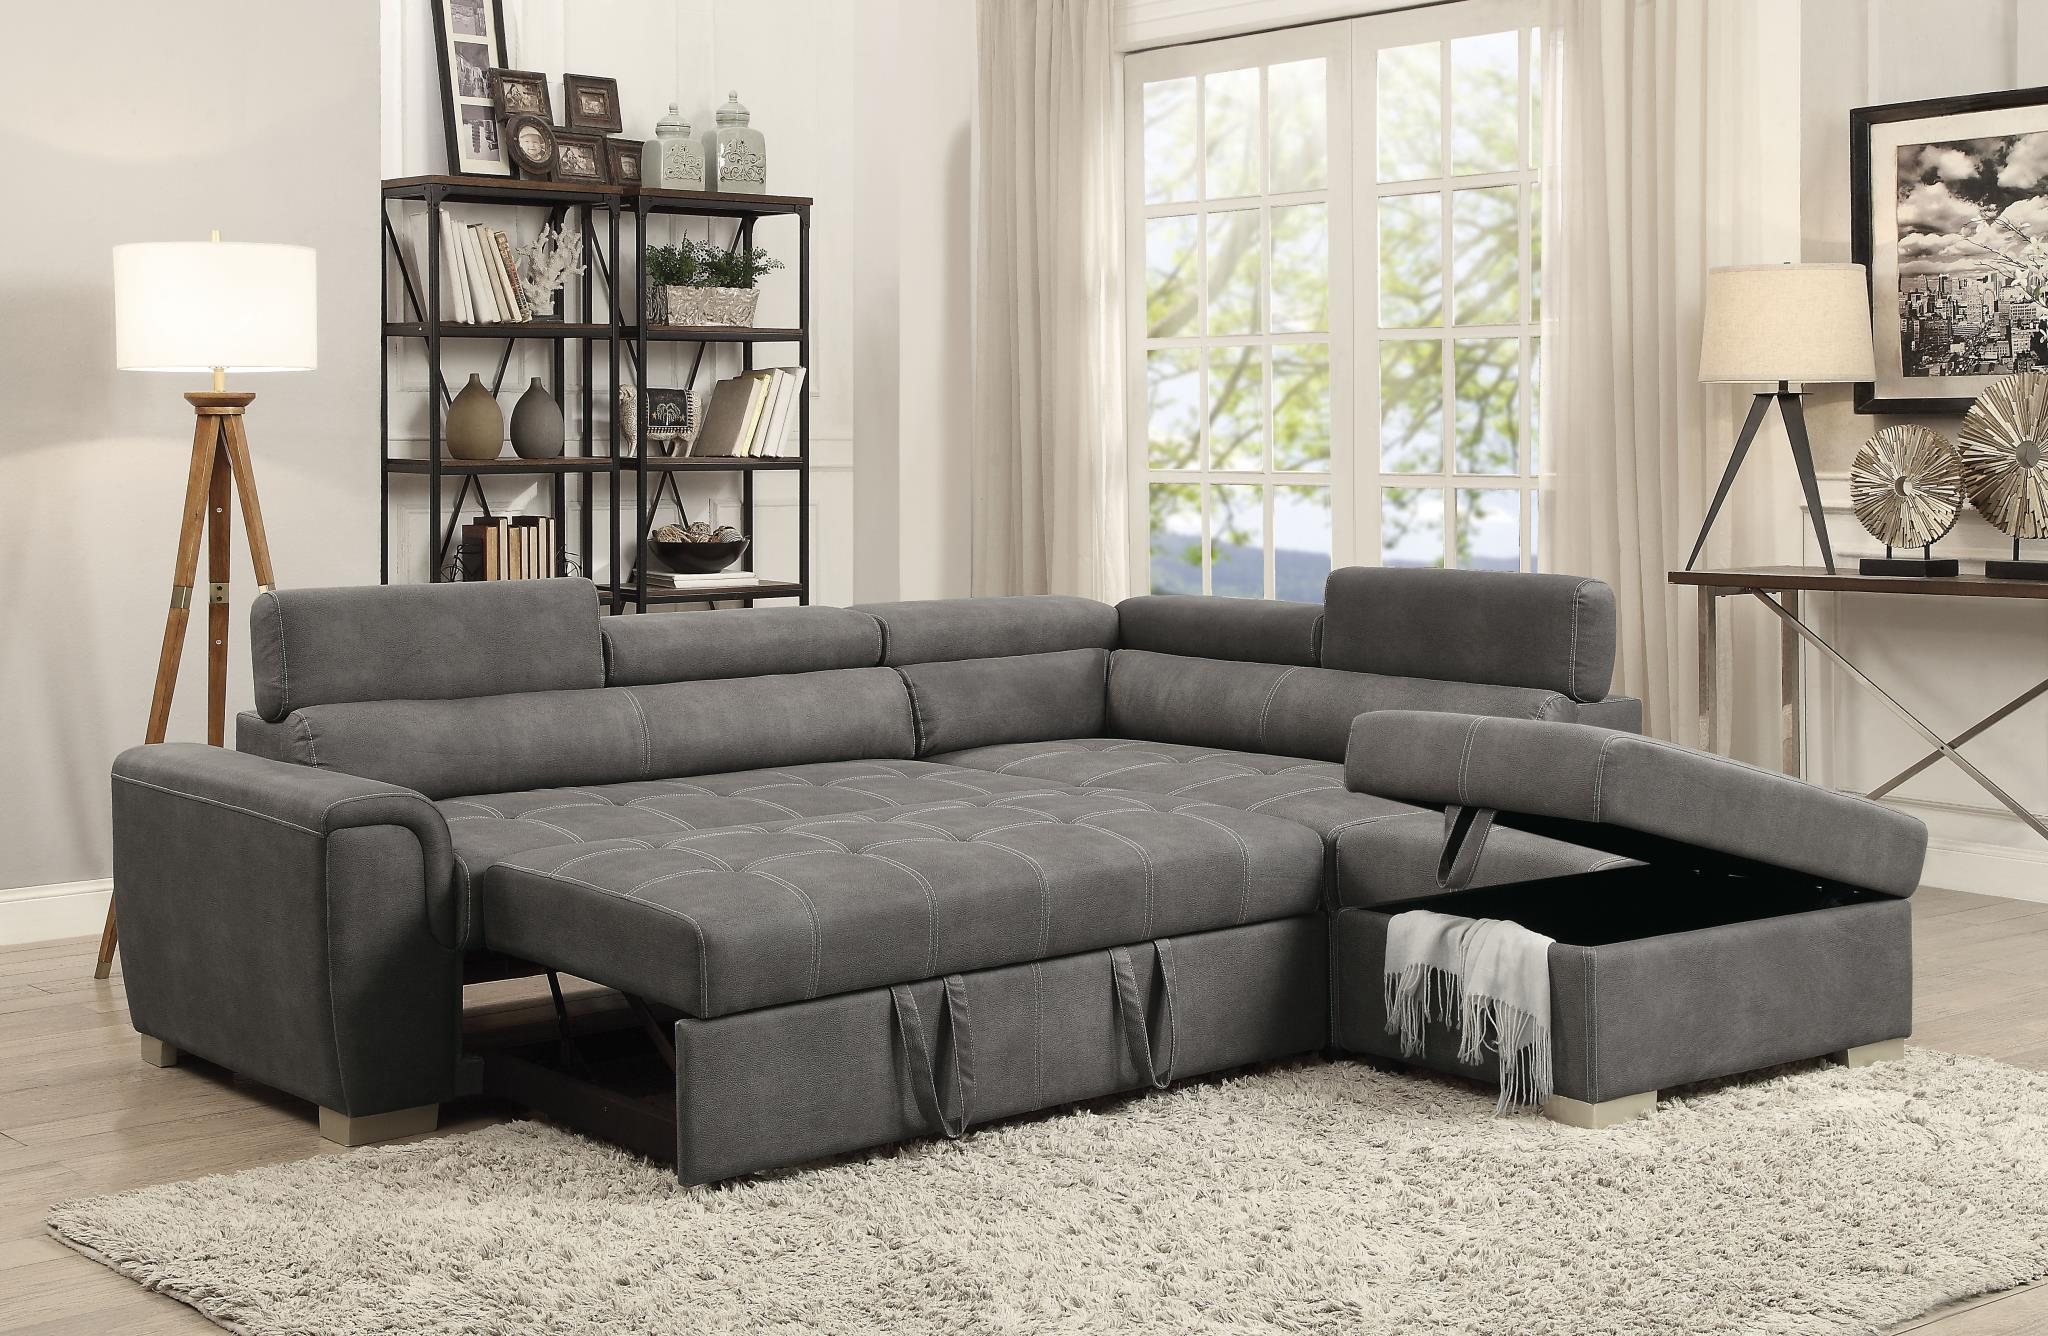 Thelma Upholstered Transitional Sectional Sleeper Sofa ...